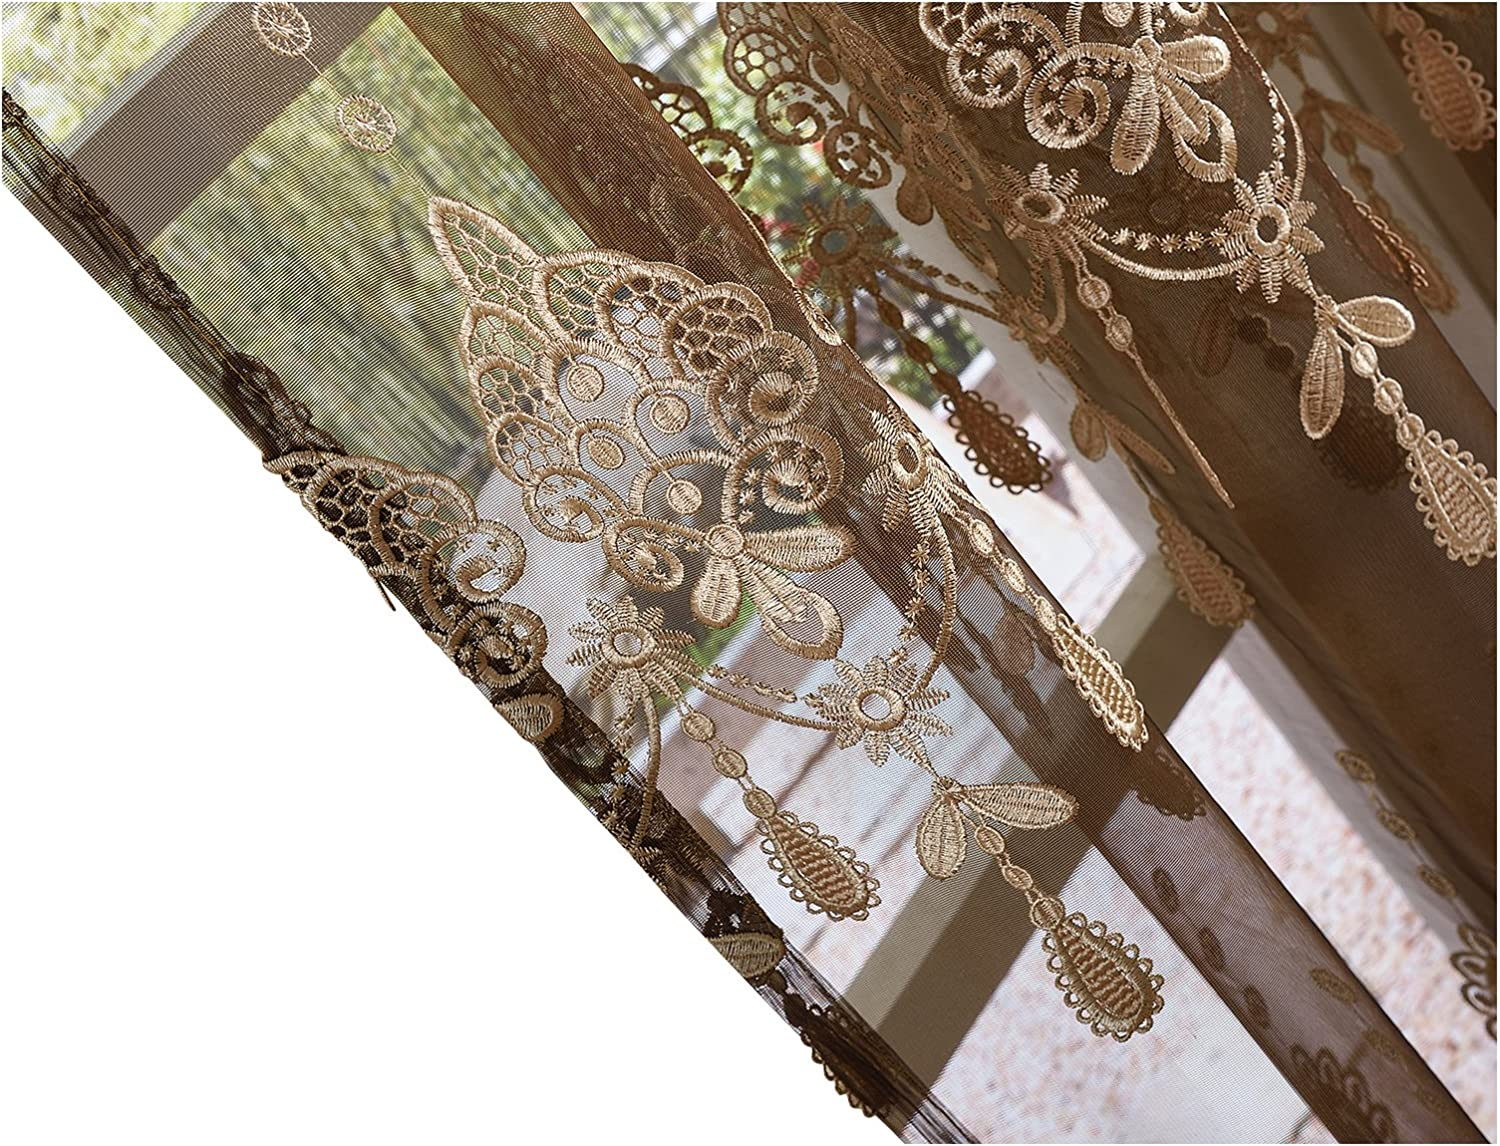 BW0057 Elegance Sheer Very popular! Curtains Sale special price Floral Embroidered Pocket Tra Rod